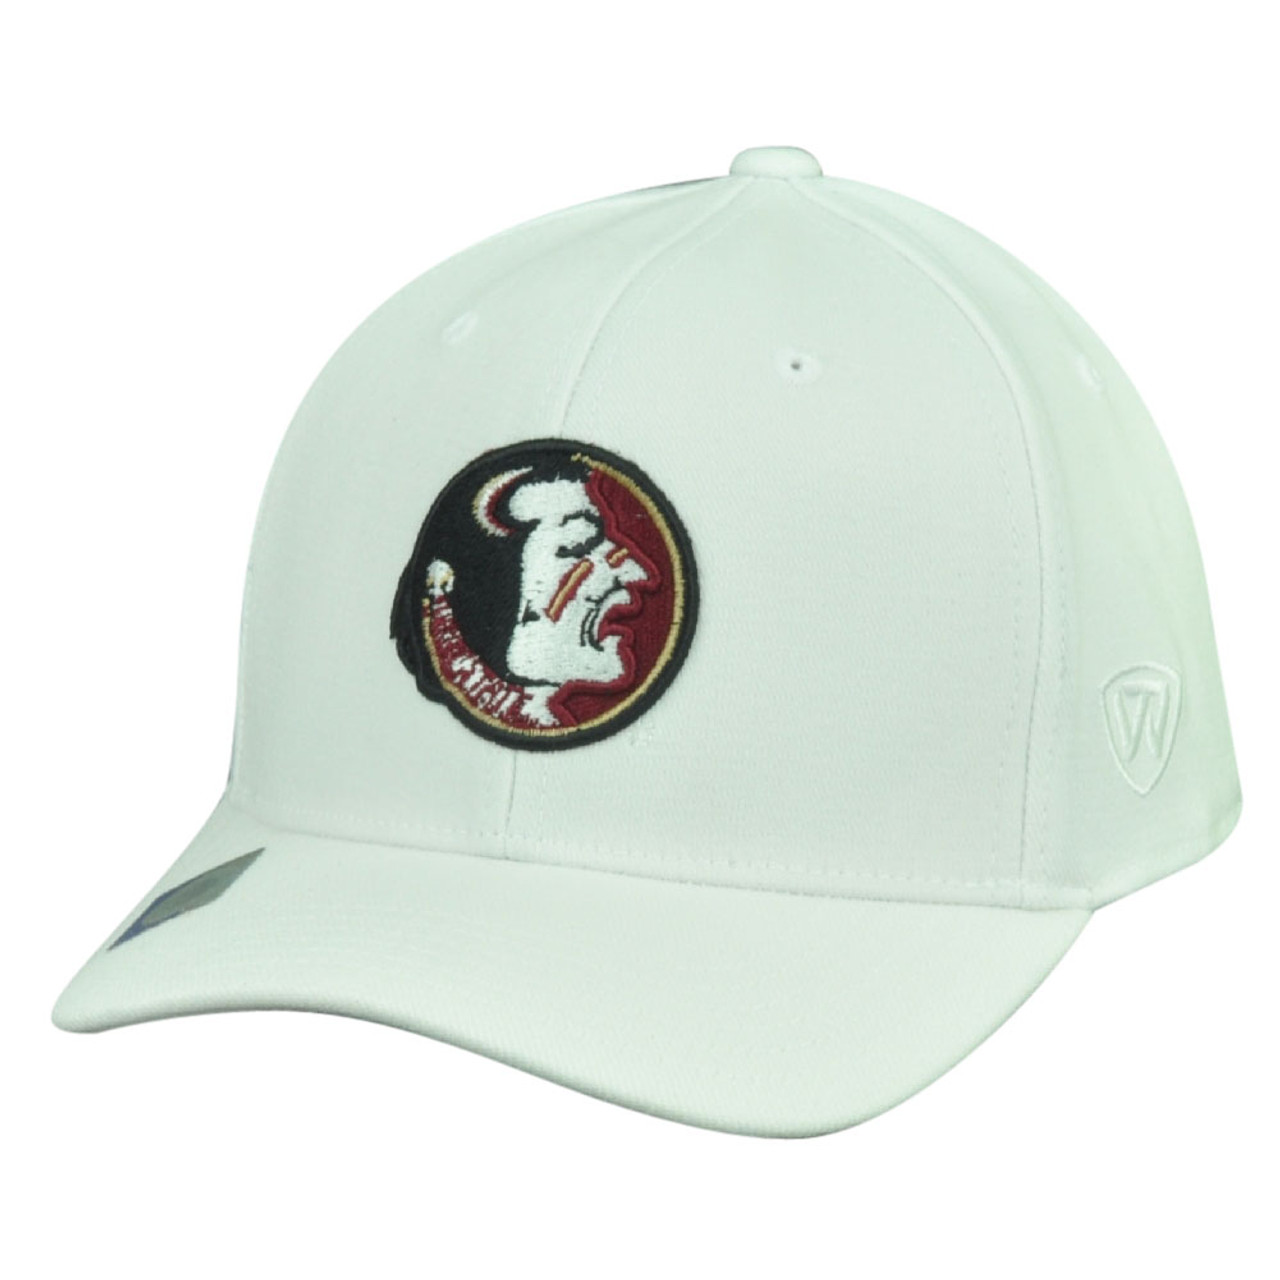 quality design 88789 c4f77 NCAA Florida State Seminoles Top the World Flex Fit Medium Large Hat Cap  White - Cap Store Online.com